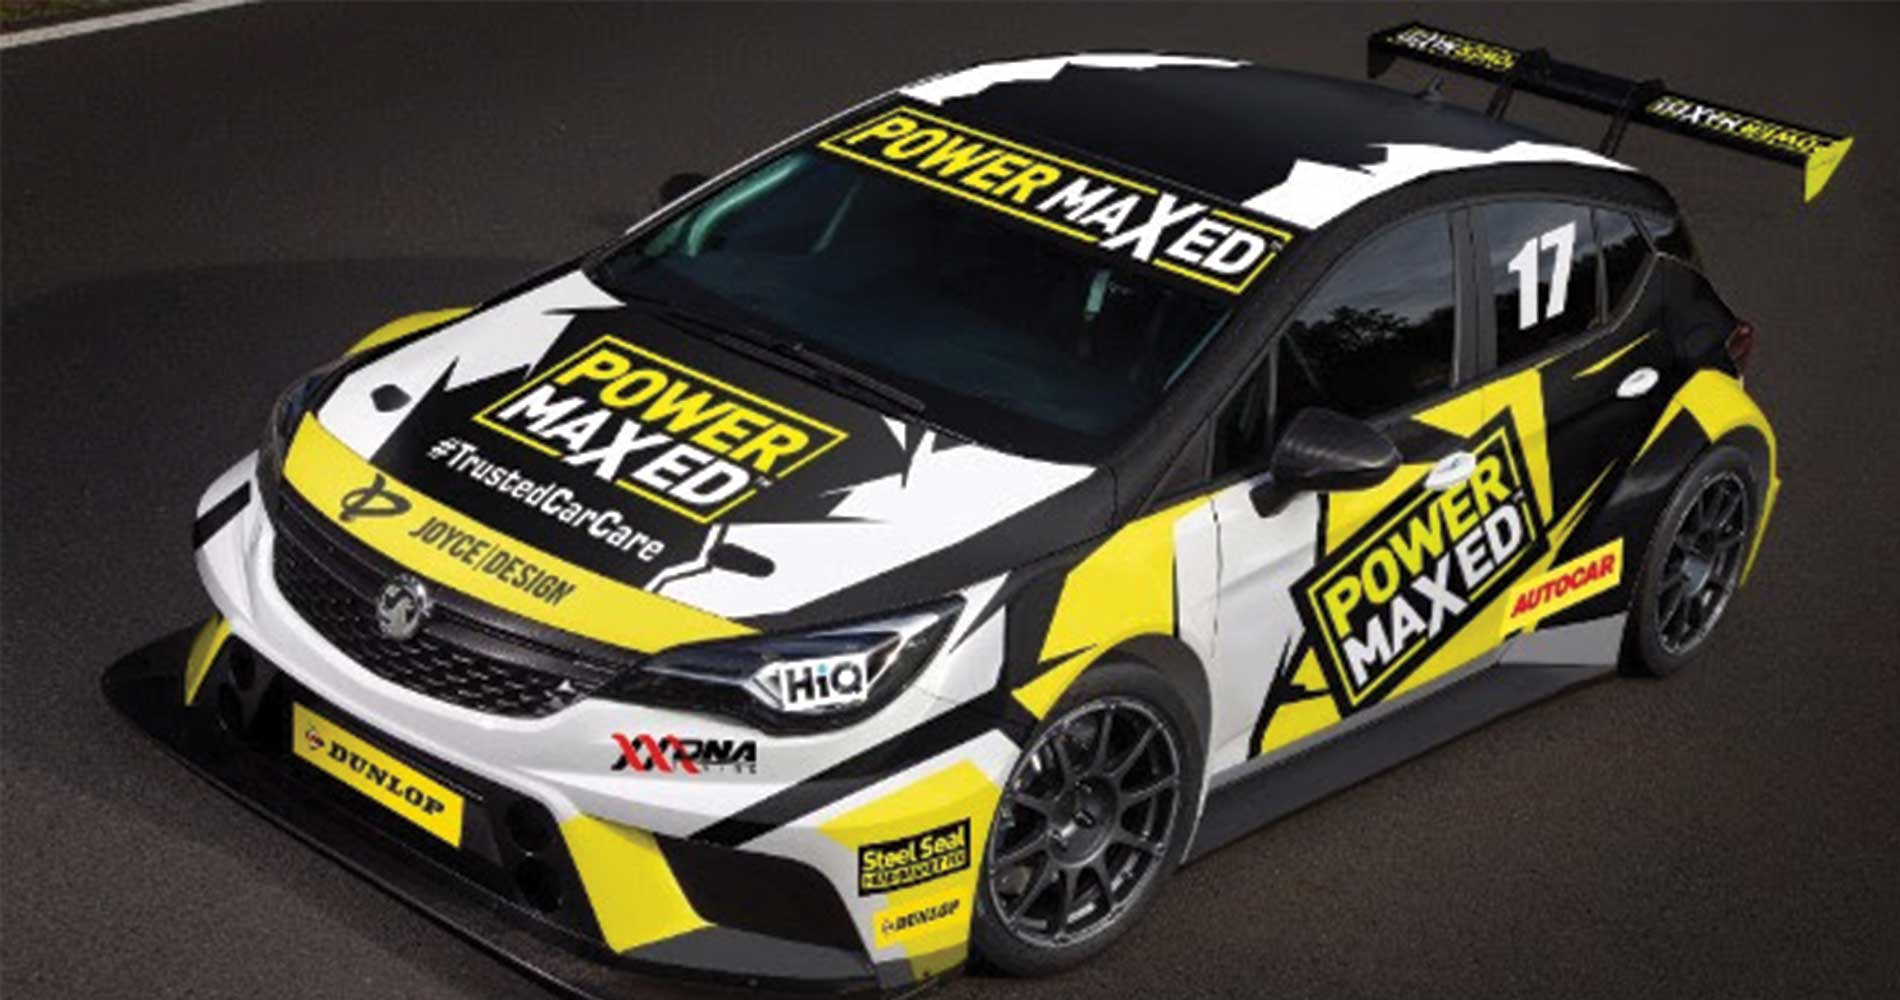 power-maxed-racing-and-vauxhall-in-btcc-from-2017-motorsportdays-track-days-1